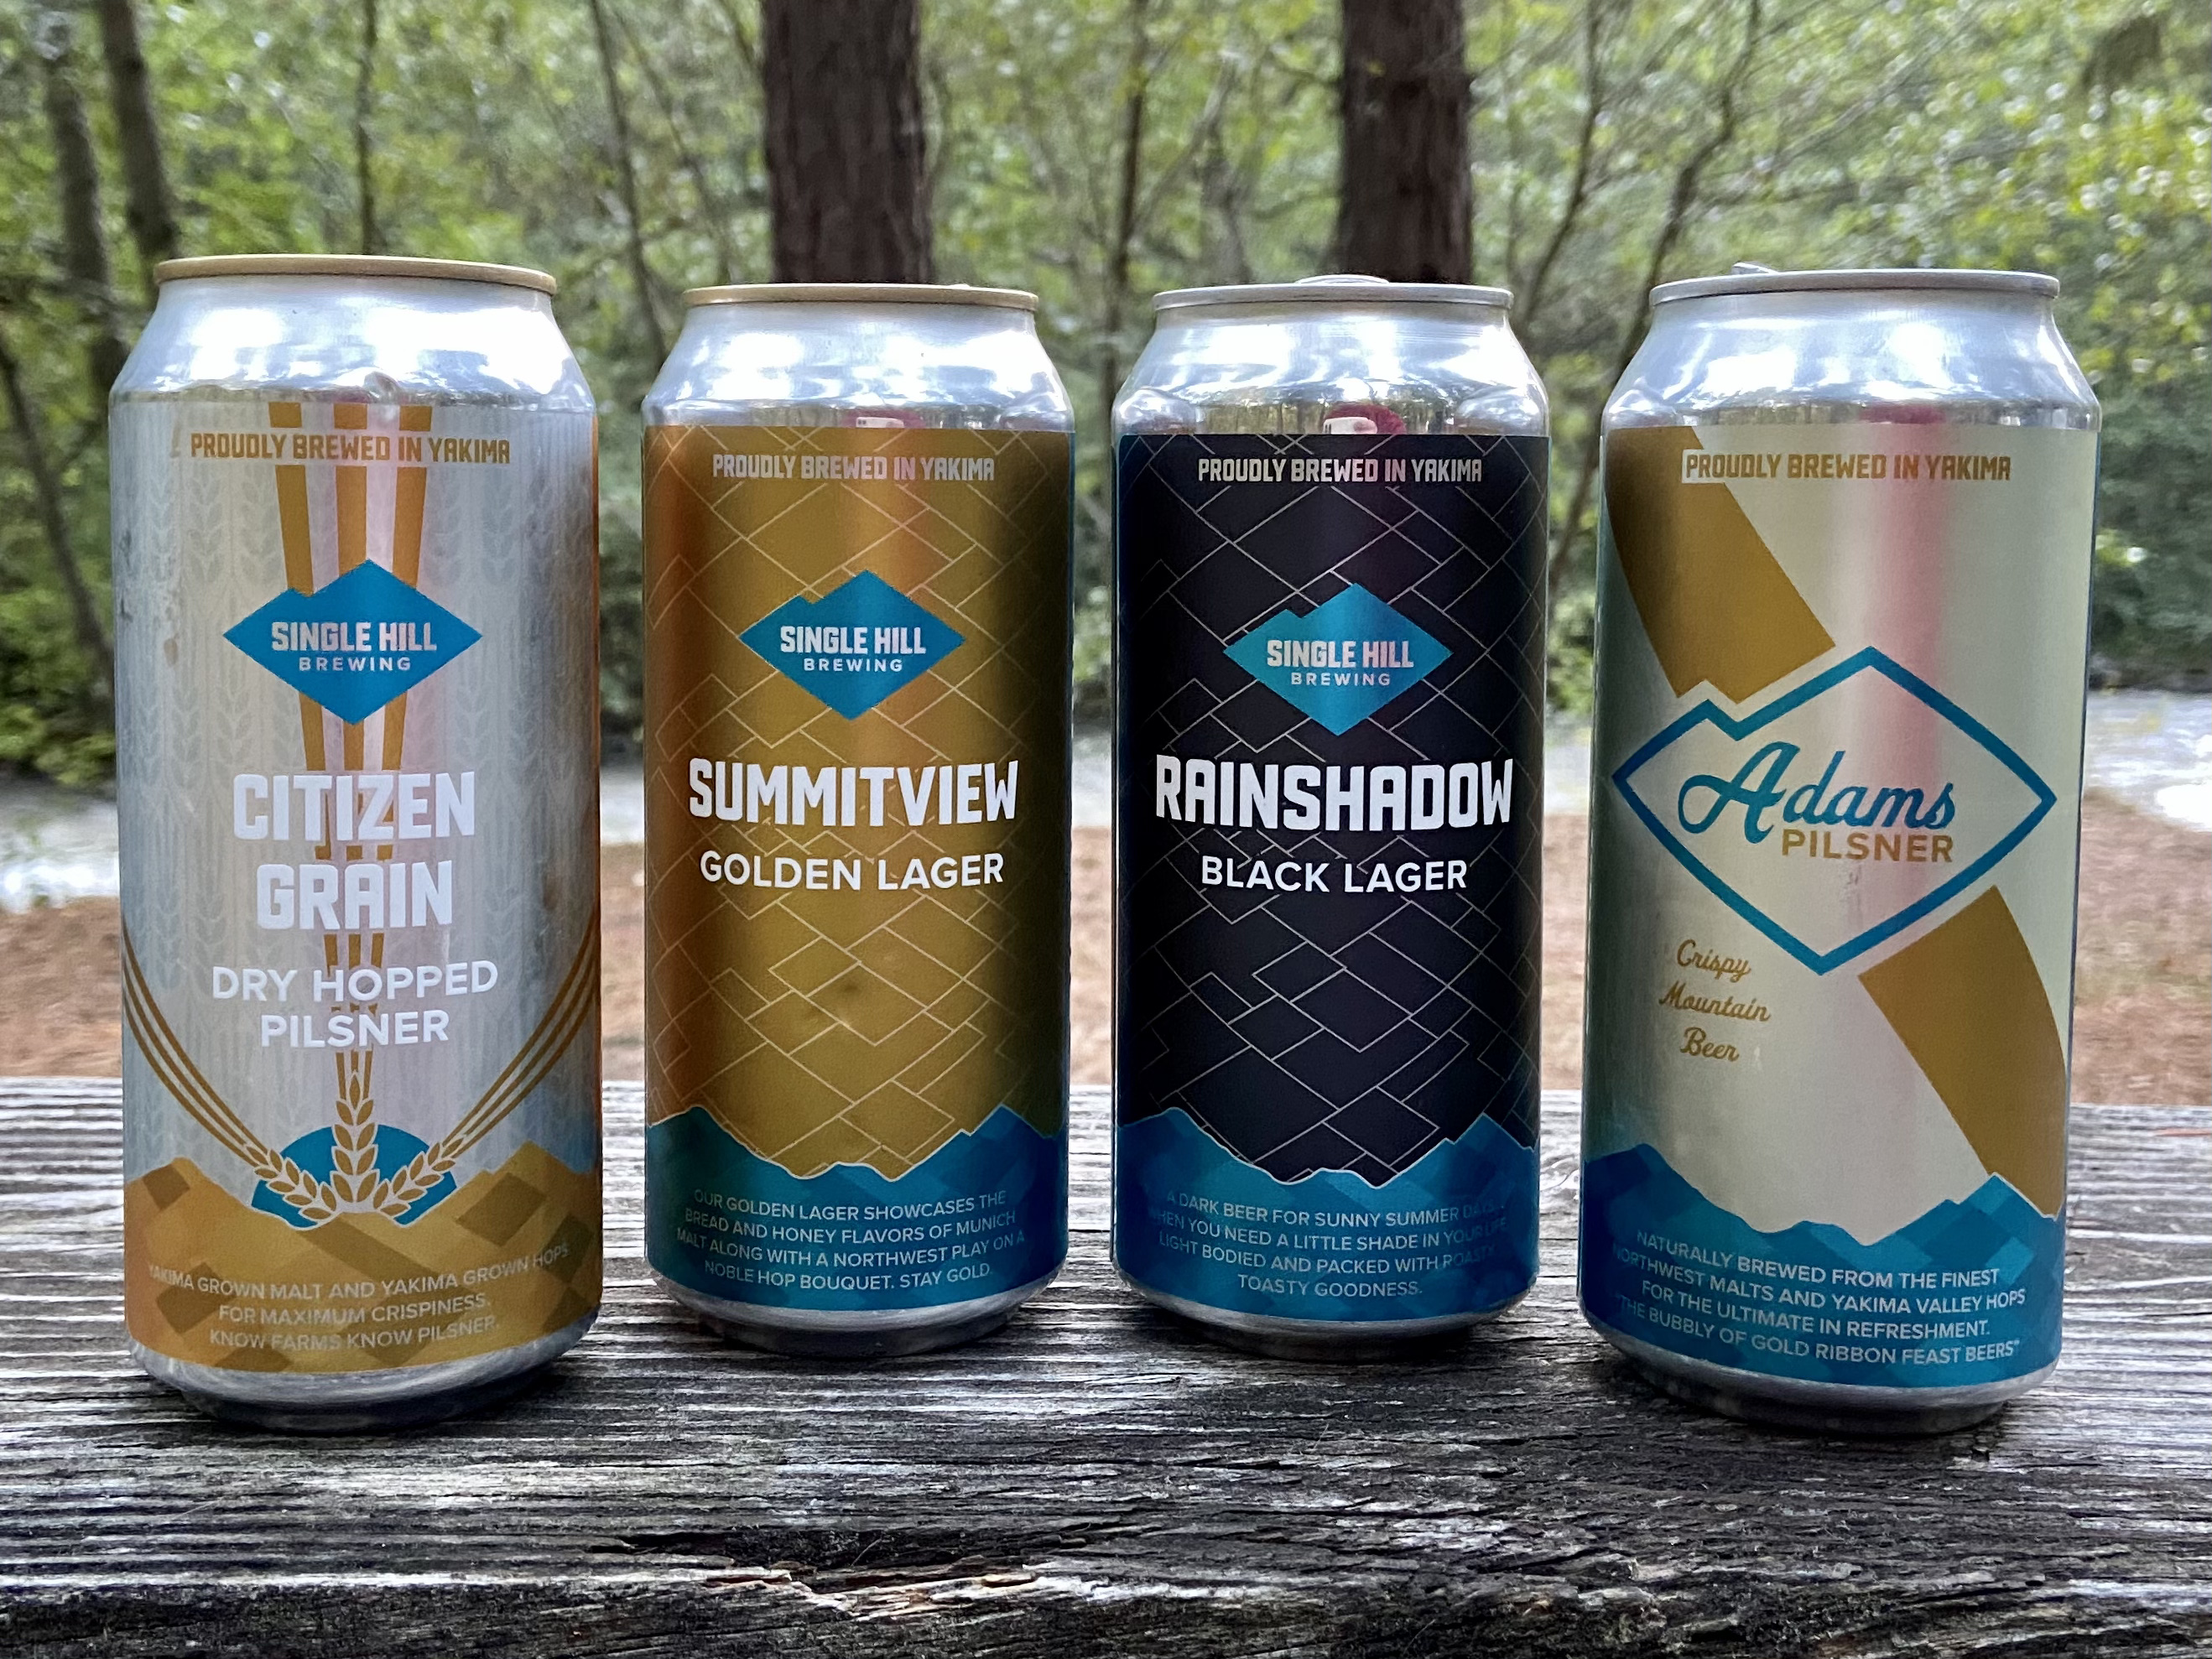 Single Hill Brewing has produced top quality lagers as seen in these three offerings. Adams Pilsner was awarded the Gold Medal at Sip Magazine's 2020 Best of the Northwest.